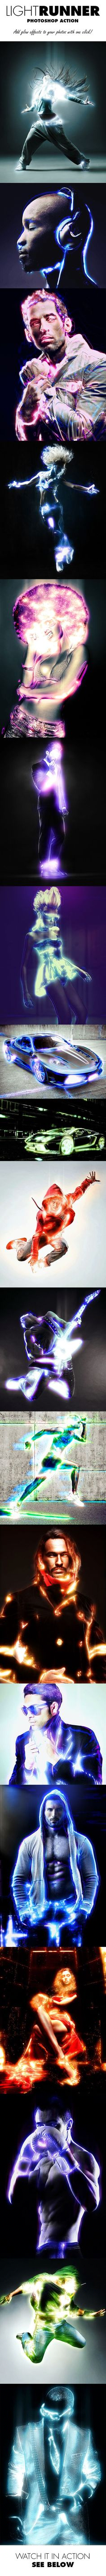 Light Runner Photoshop Action from GraphicRiver.  Gives really cool glow effects and neon lighting to photos!! (Cool Easy Ideas)